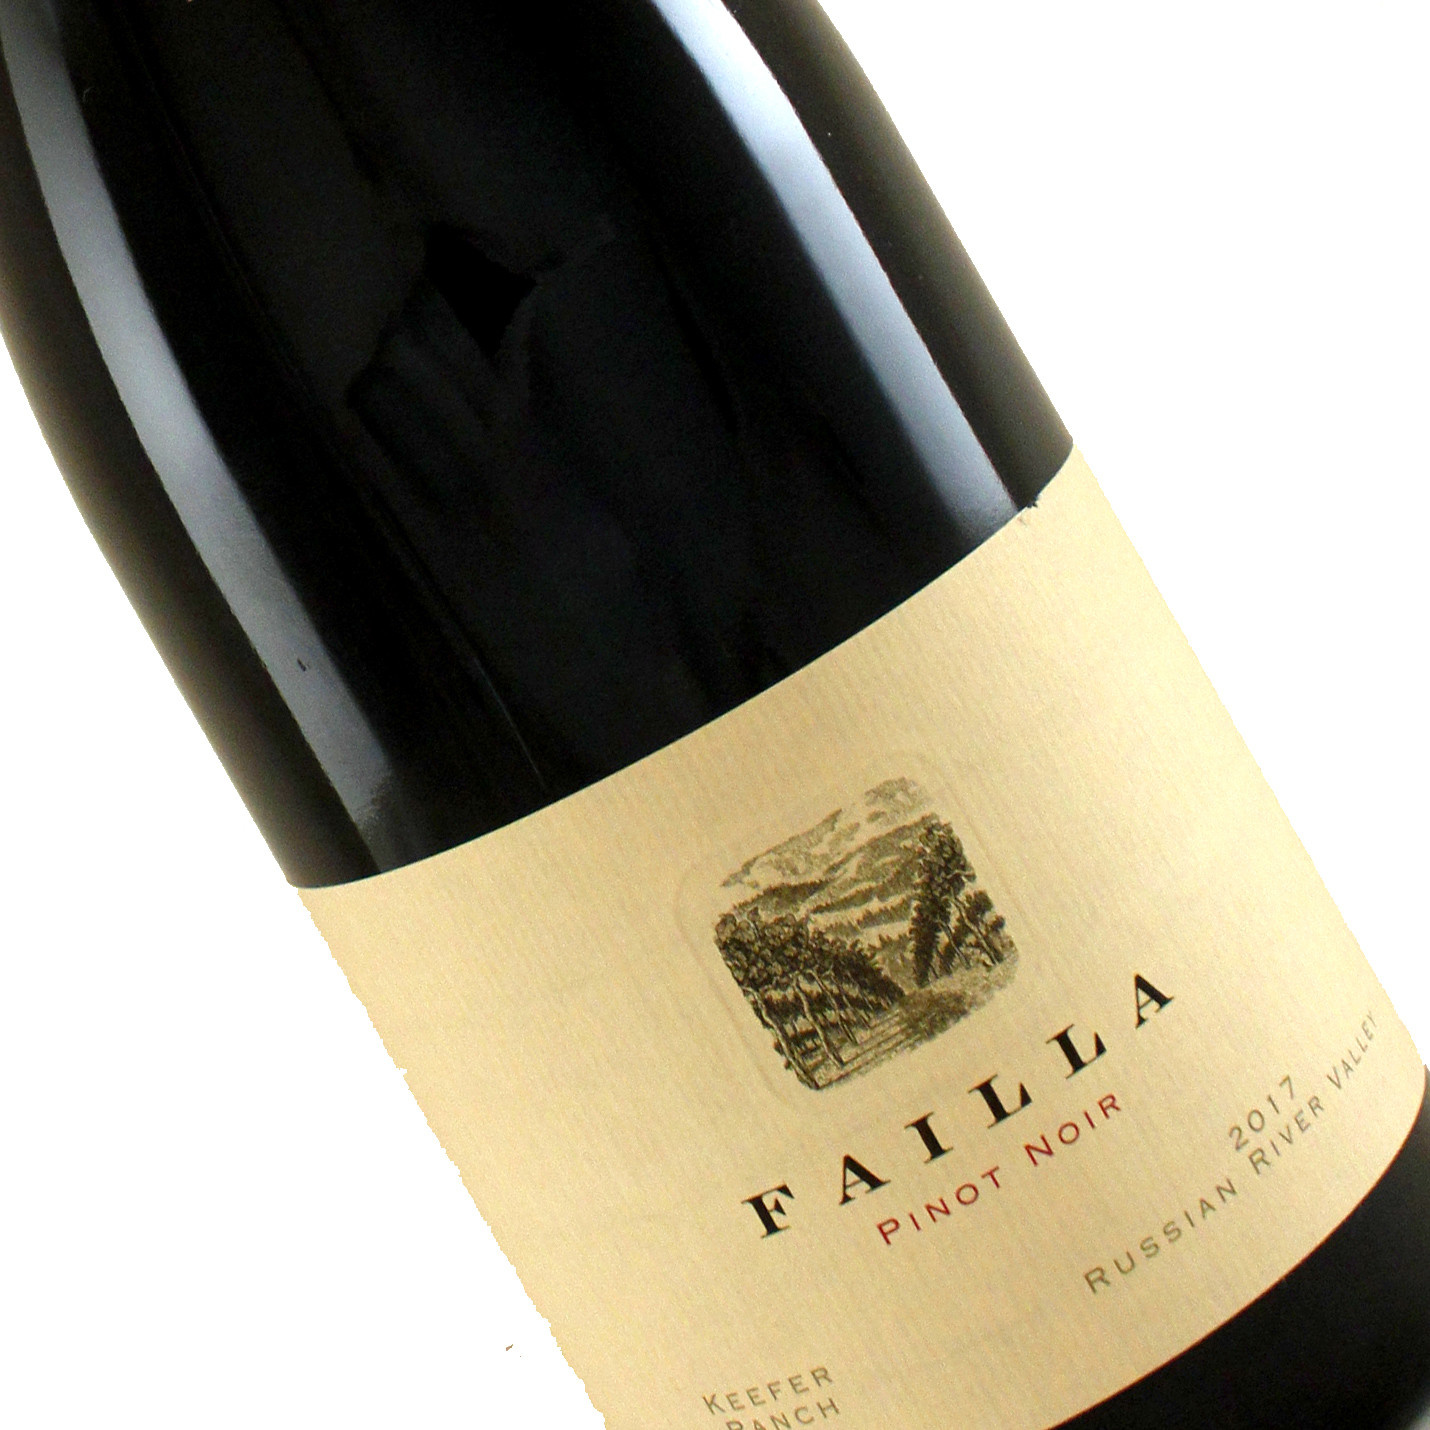 Failla 2017 Pinot Noir Keefer Ranch, Russian River Valley